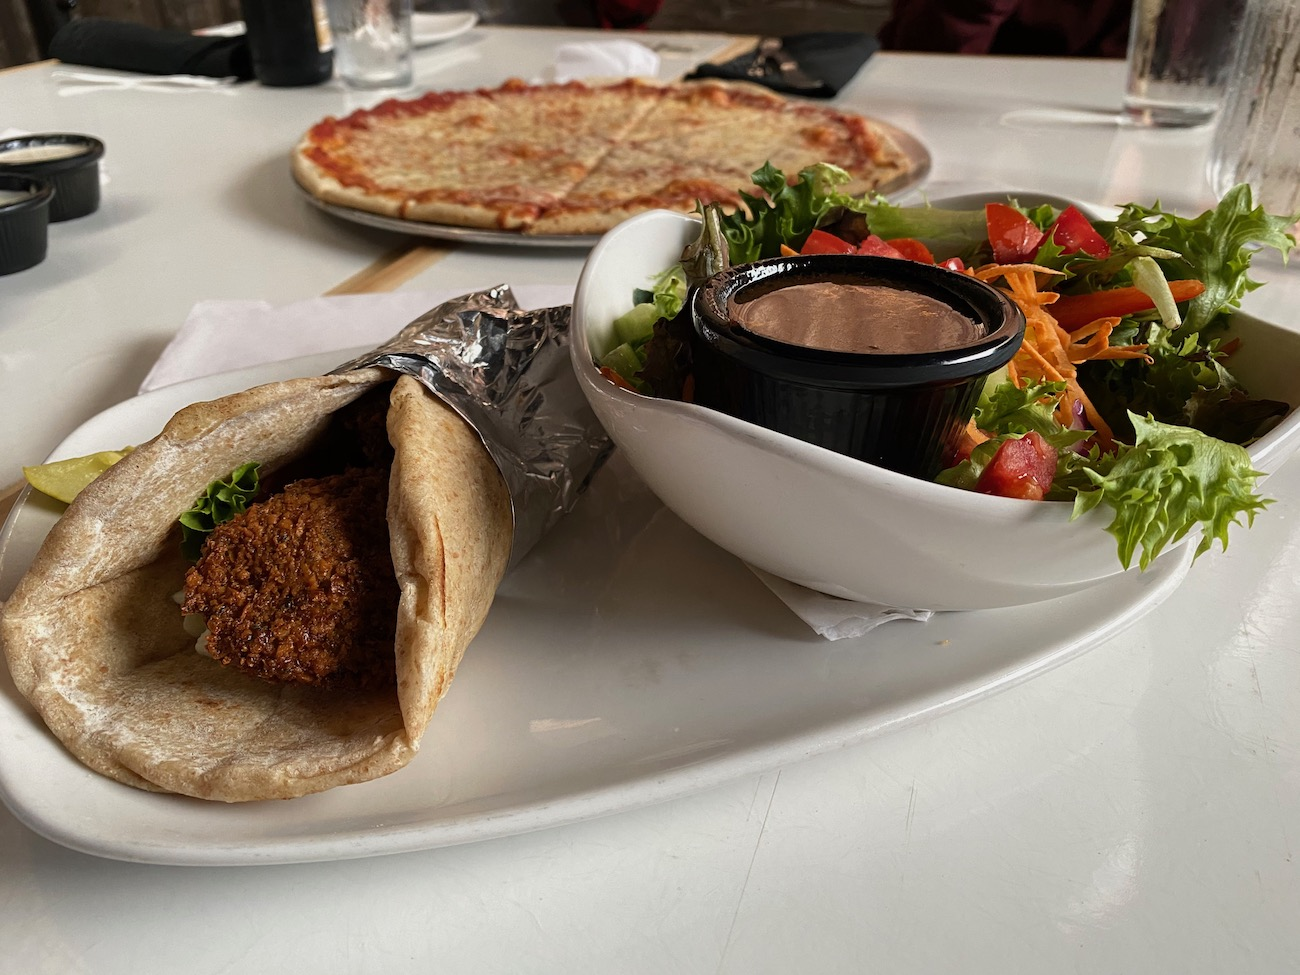 A falafel sandwich at Jackie O's Brewery / Image: Chez Chesak{ }// Published: 10.27.20